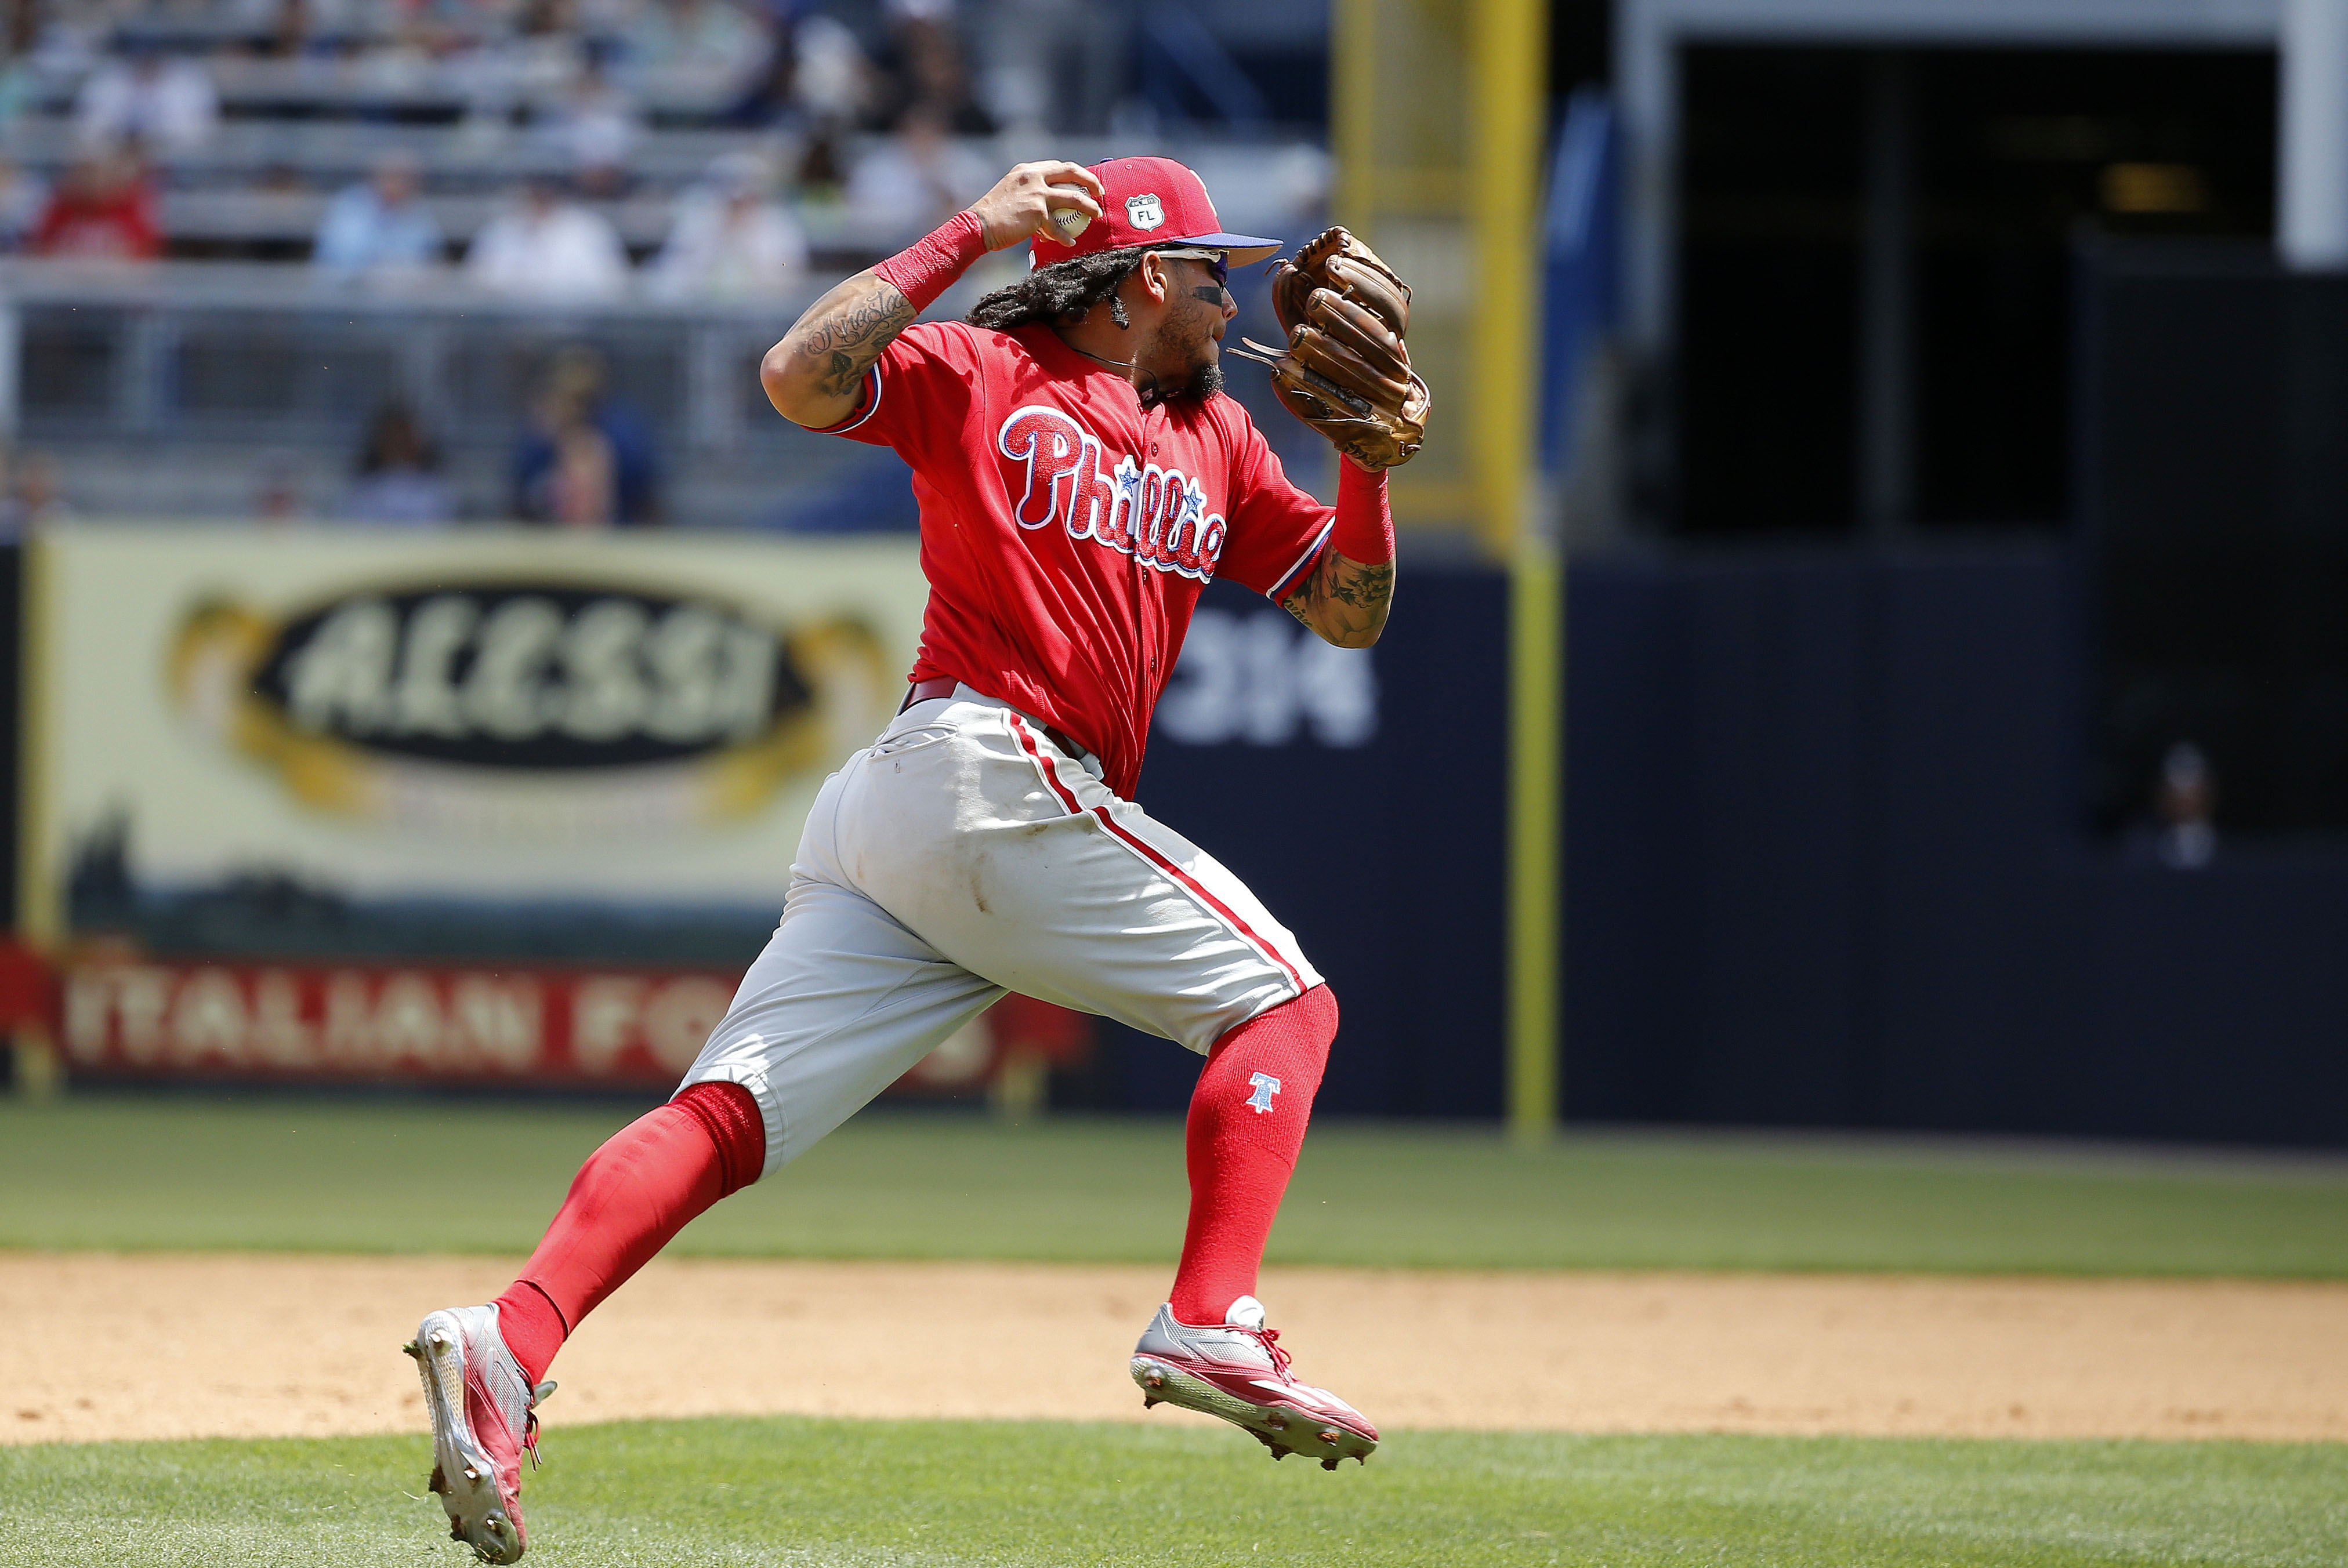 Philadelphia Phillies: Where Does Freddy Galvis Fit in with Team's Future?